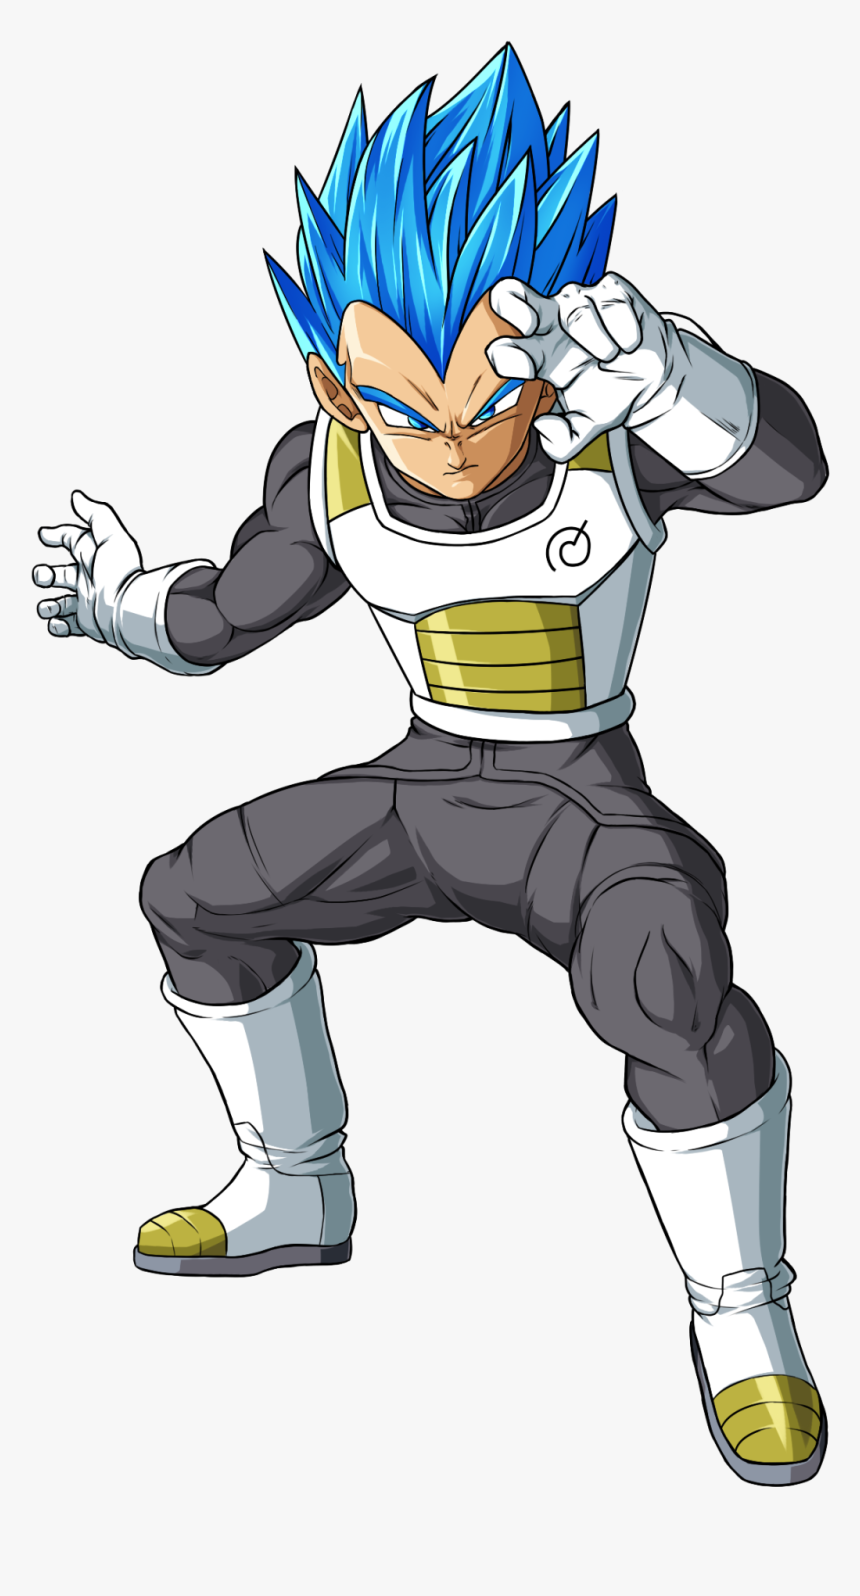 Wallpaper - Dragon Ball Super Vegeta Y Goku Png, Transparent Png, Free Download